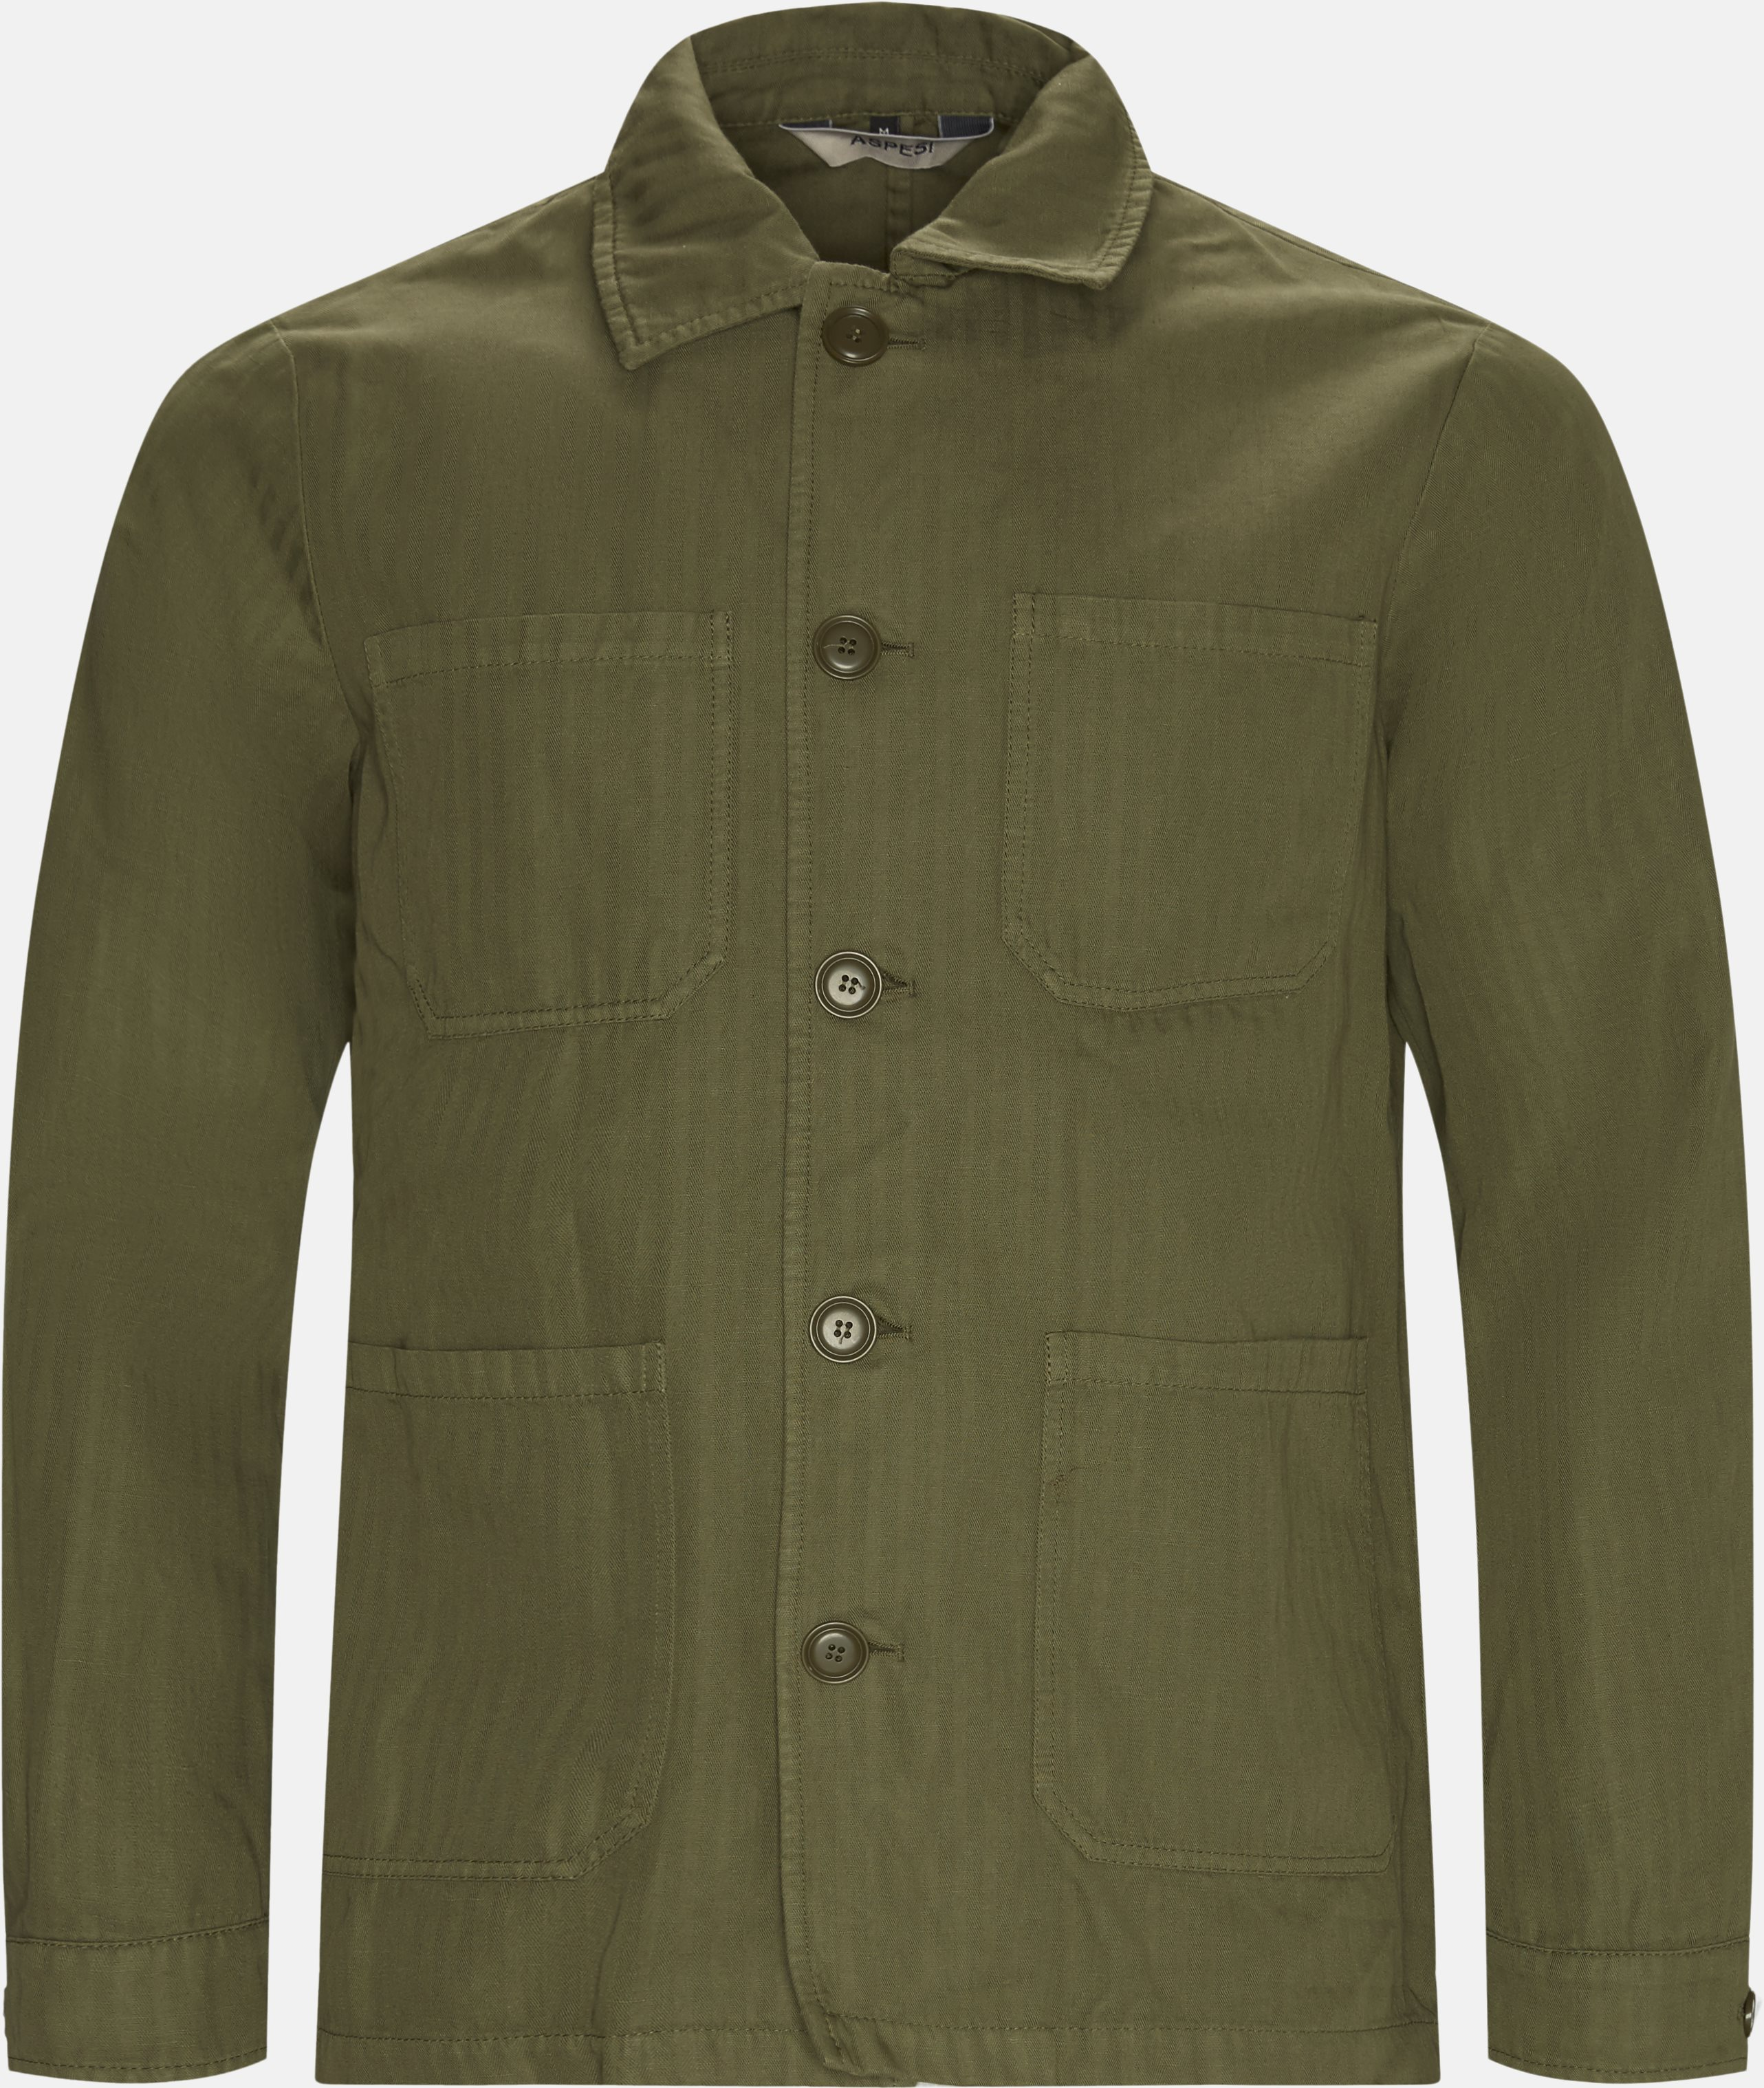 Overshirts - Regular fit - Army